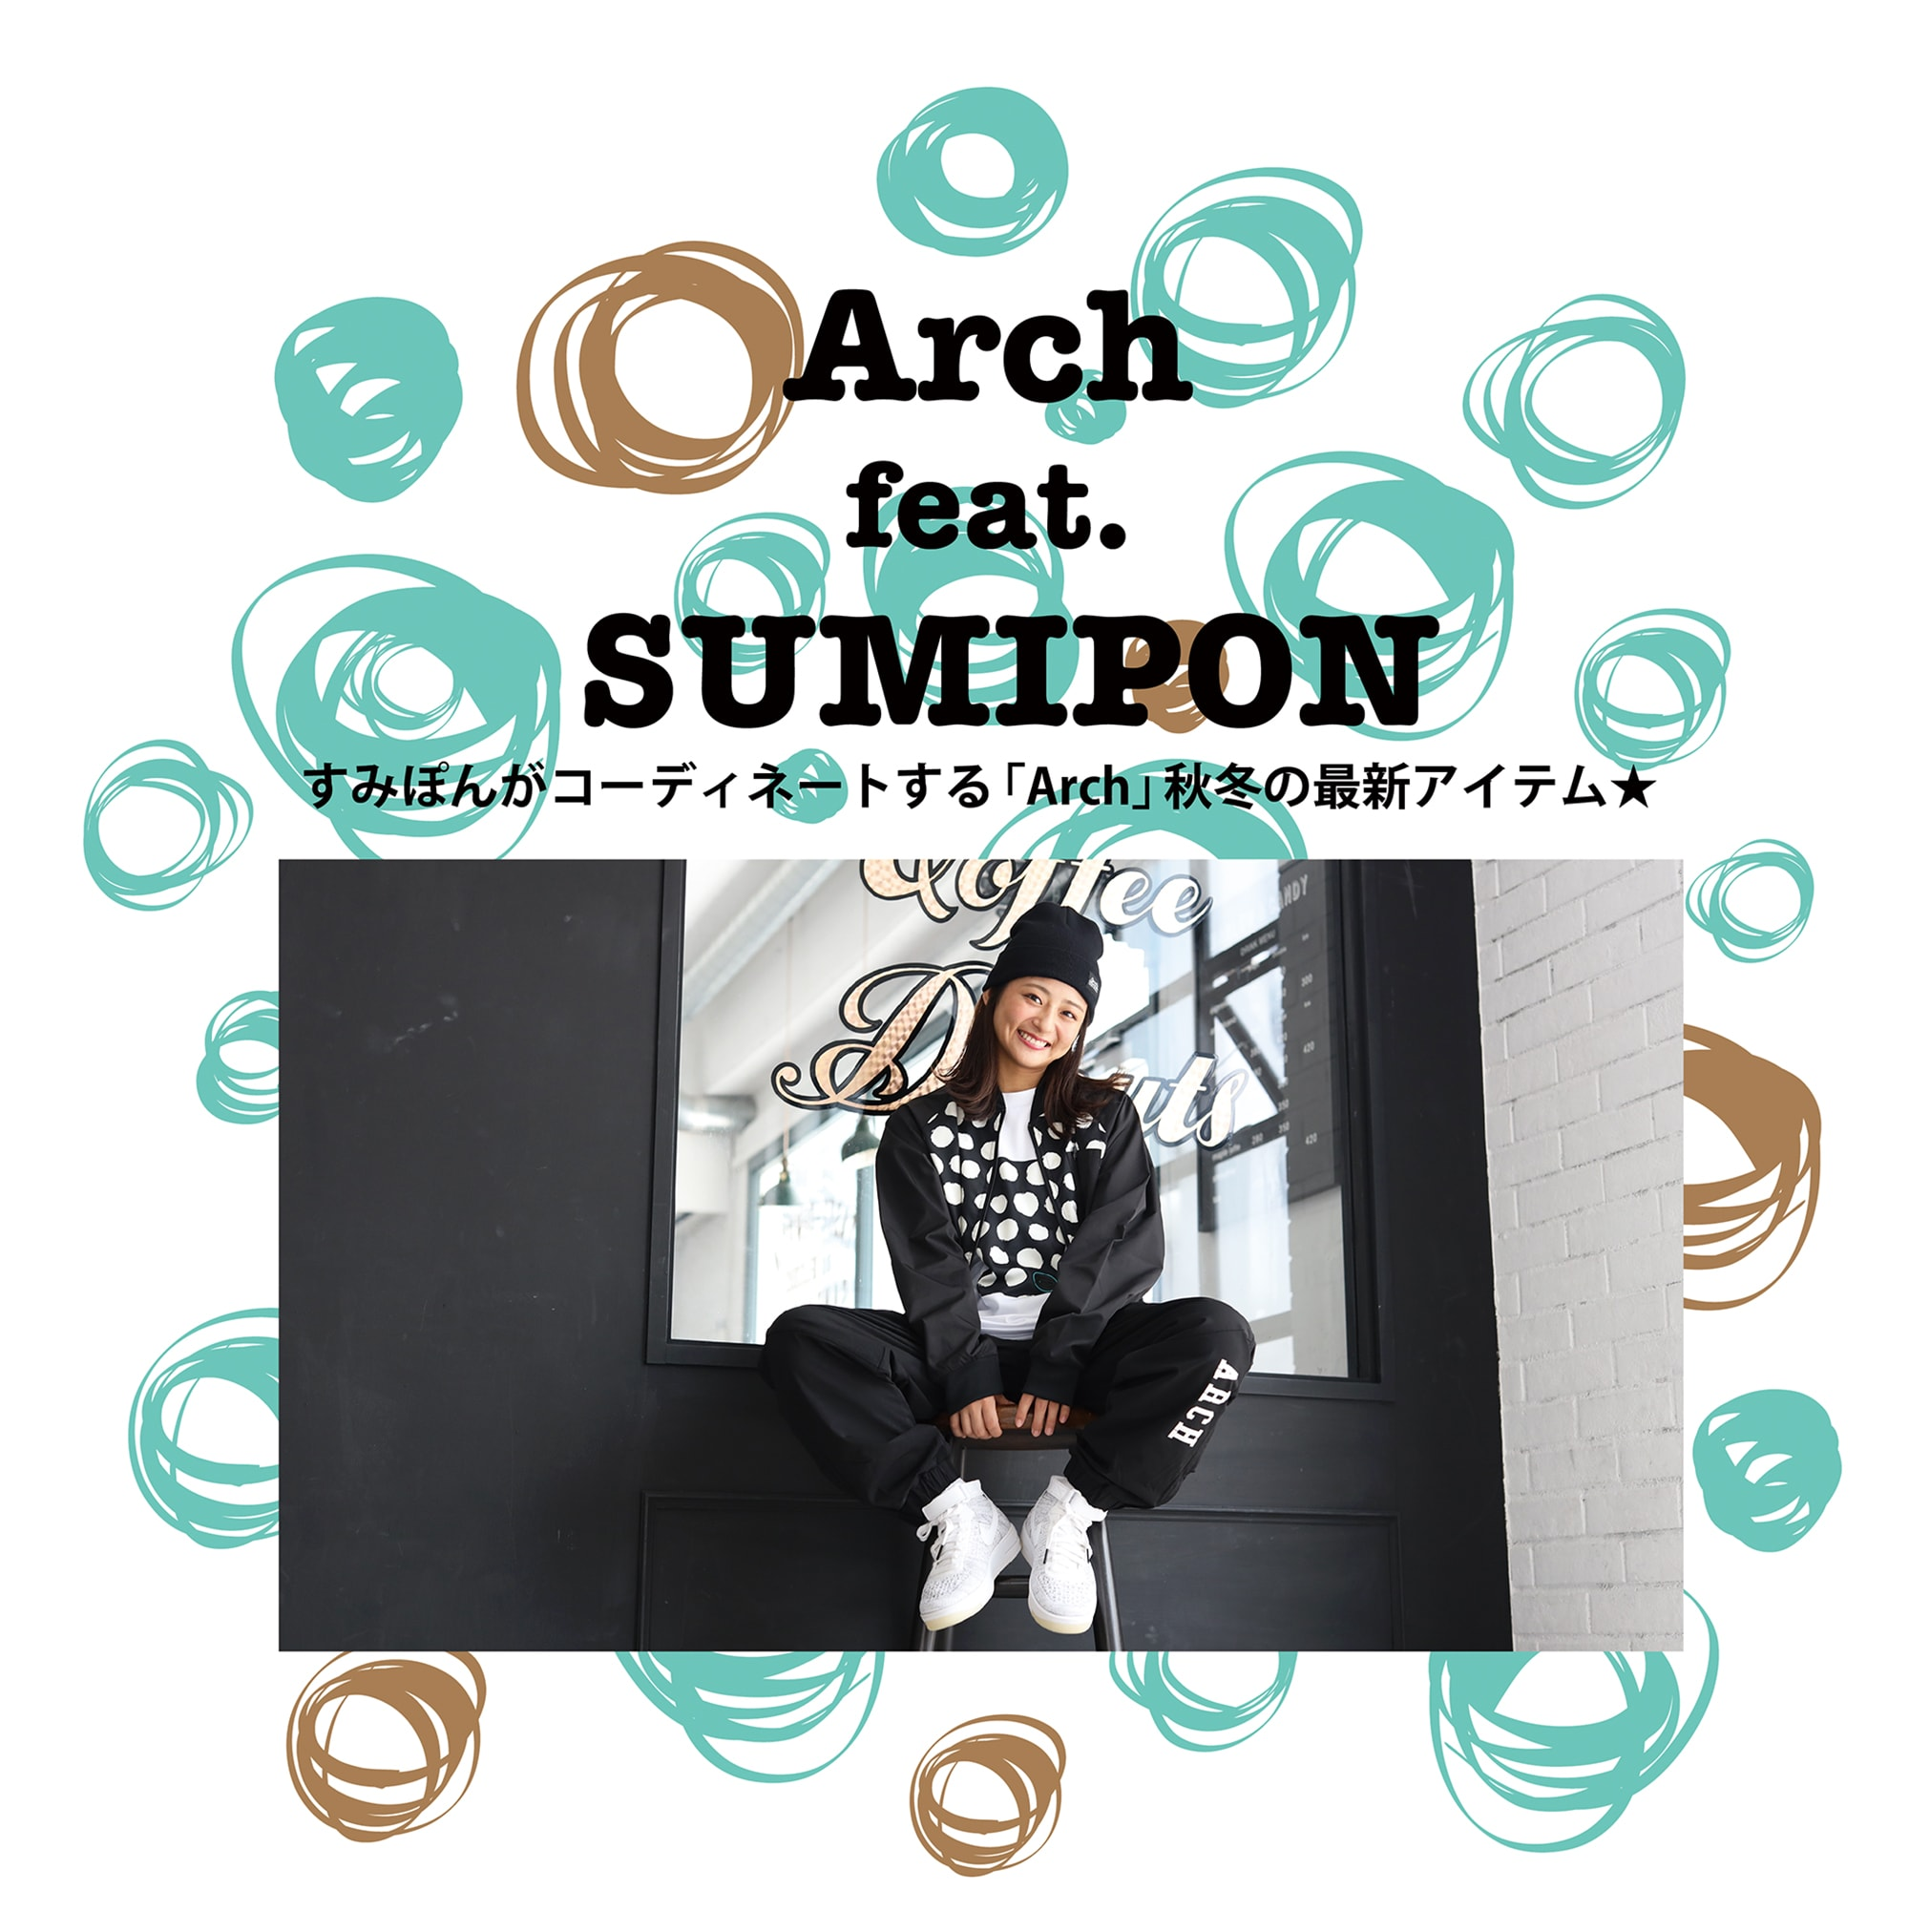 Arch feat. SUMIPON